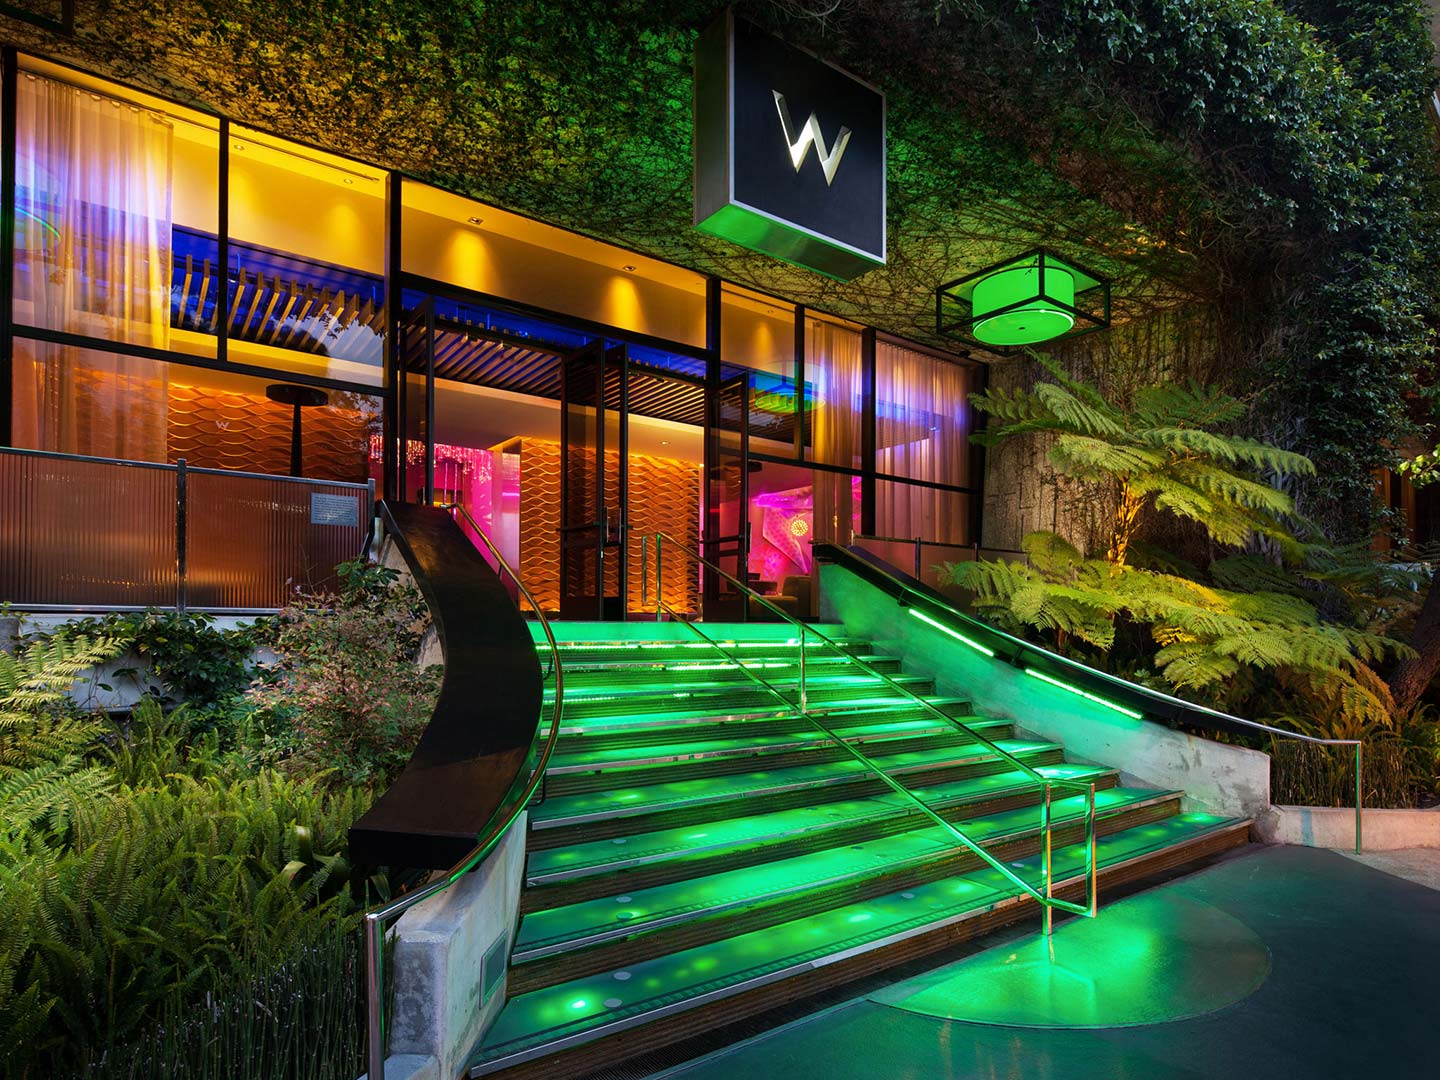 W HOTEL - WESTWOOD - 930 Hilgard AvenueLos Angeles, CA 90024310.208.8765Map LinkTripAdvisor Reviews*Request special Adler-Weiner Research rate when booking ($348, flat rate)If making reservations online, please use the Corporate Reference #: 300348